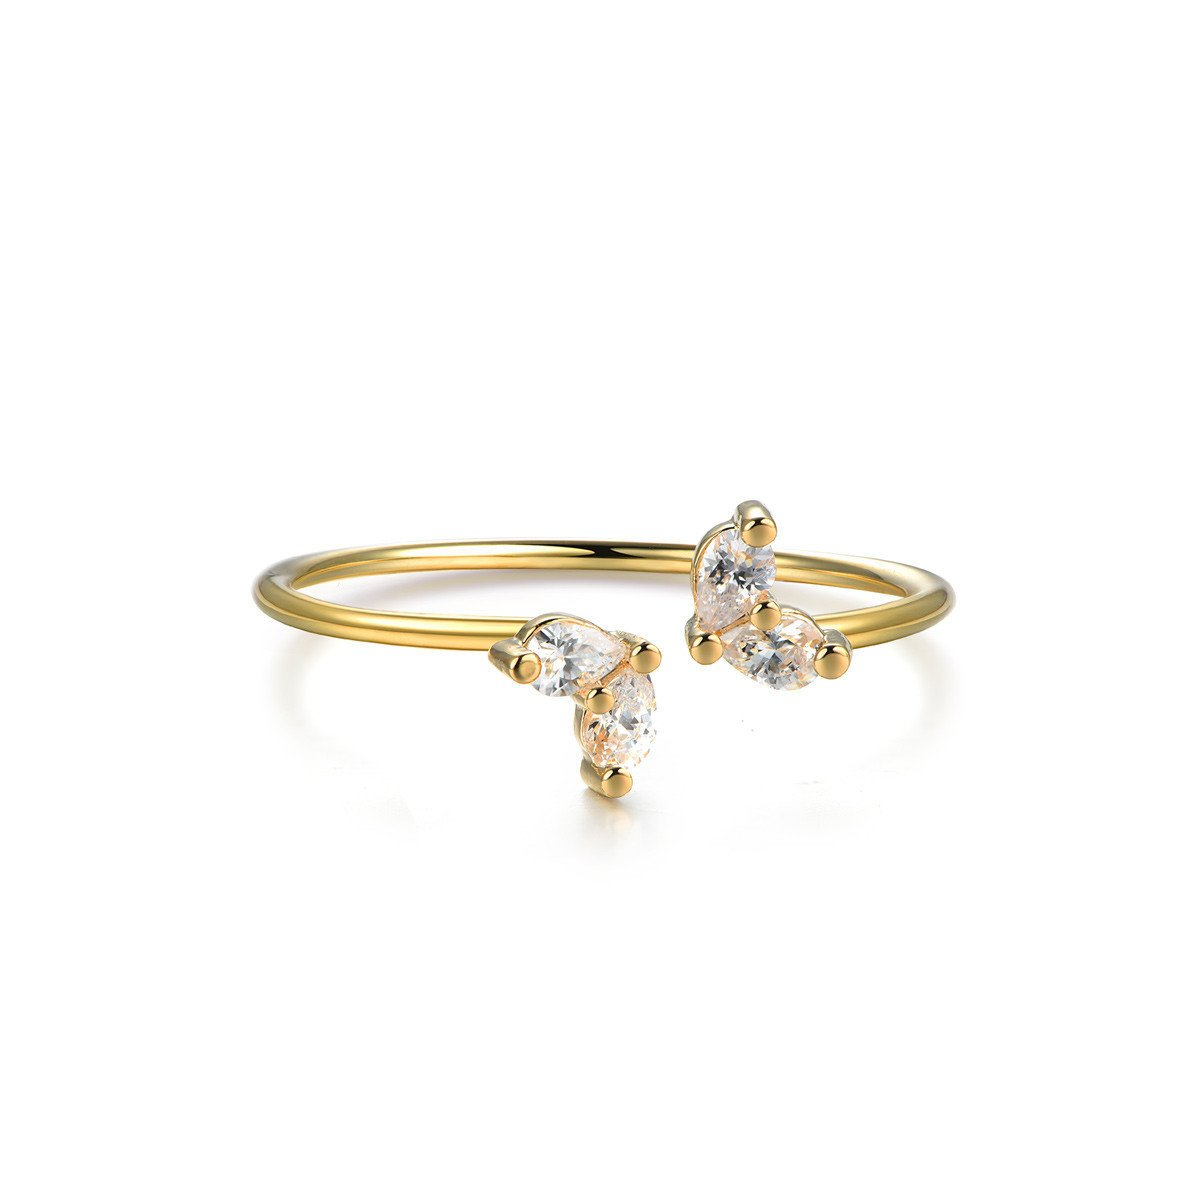 rxgnpof of contemporary rings favorite few help diamond engagement synethic to ring our inspire your new dream